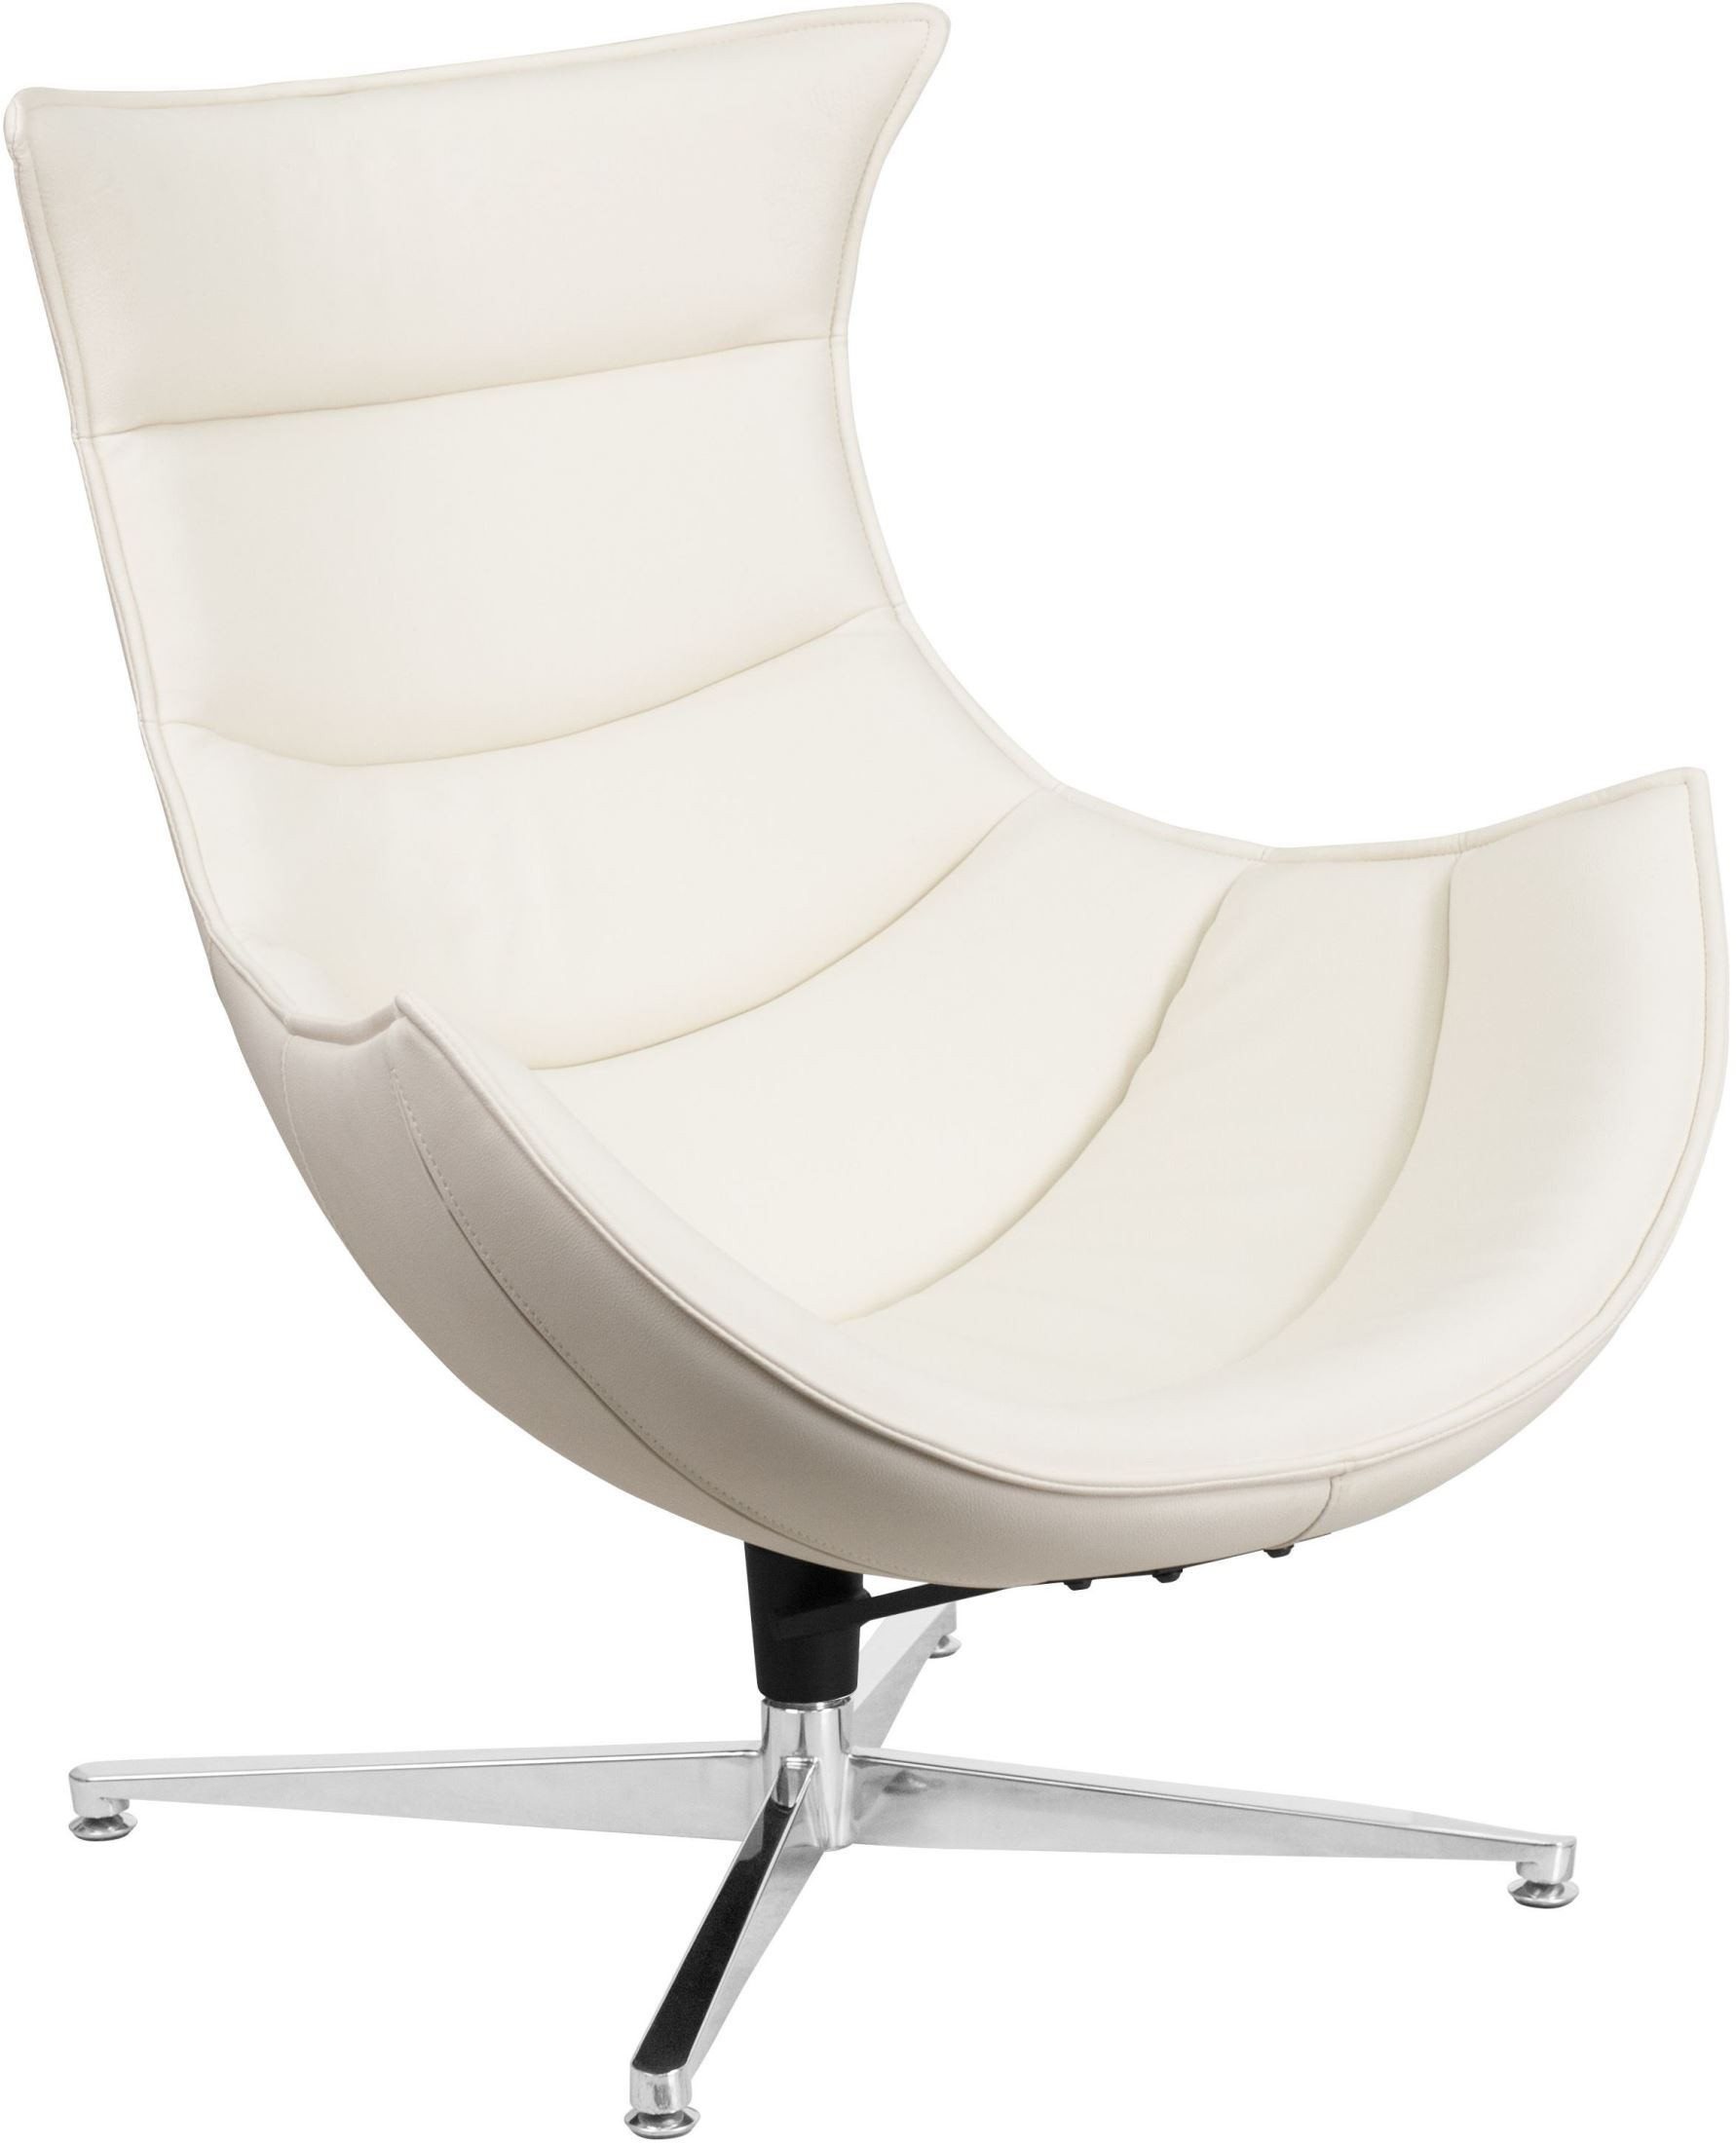 white leather swivel armchair white leather swivel cocoon chair from renegade coleman 22013 | zb 32 gg